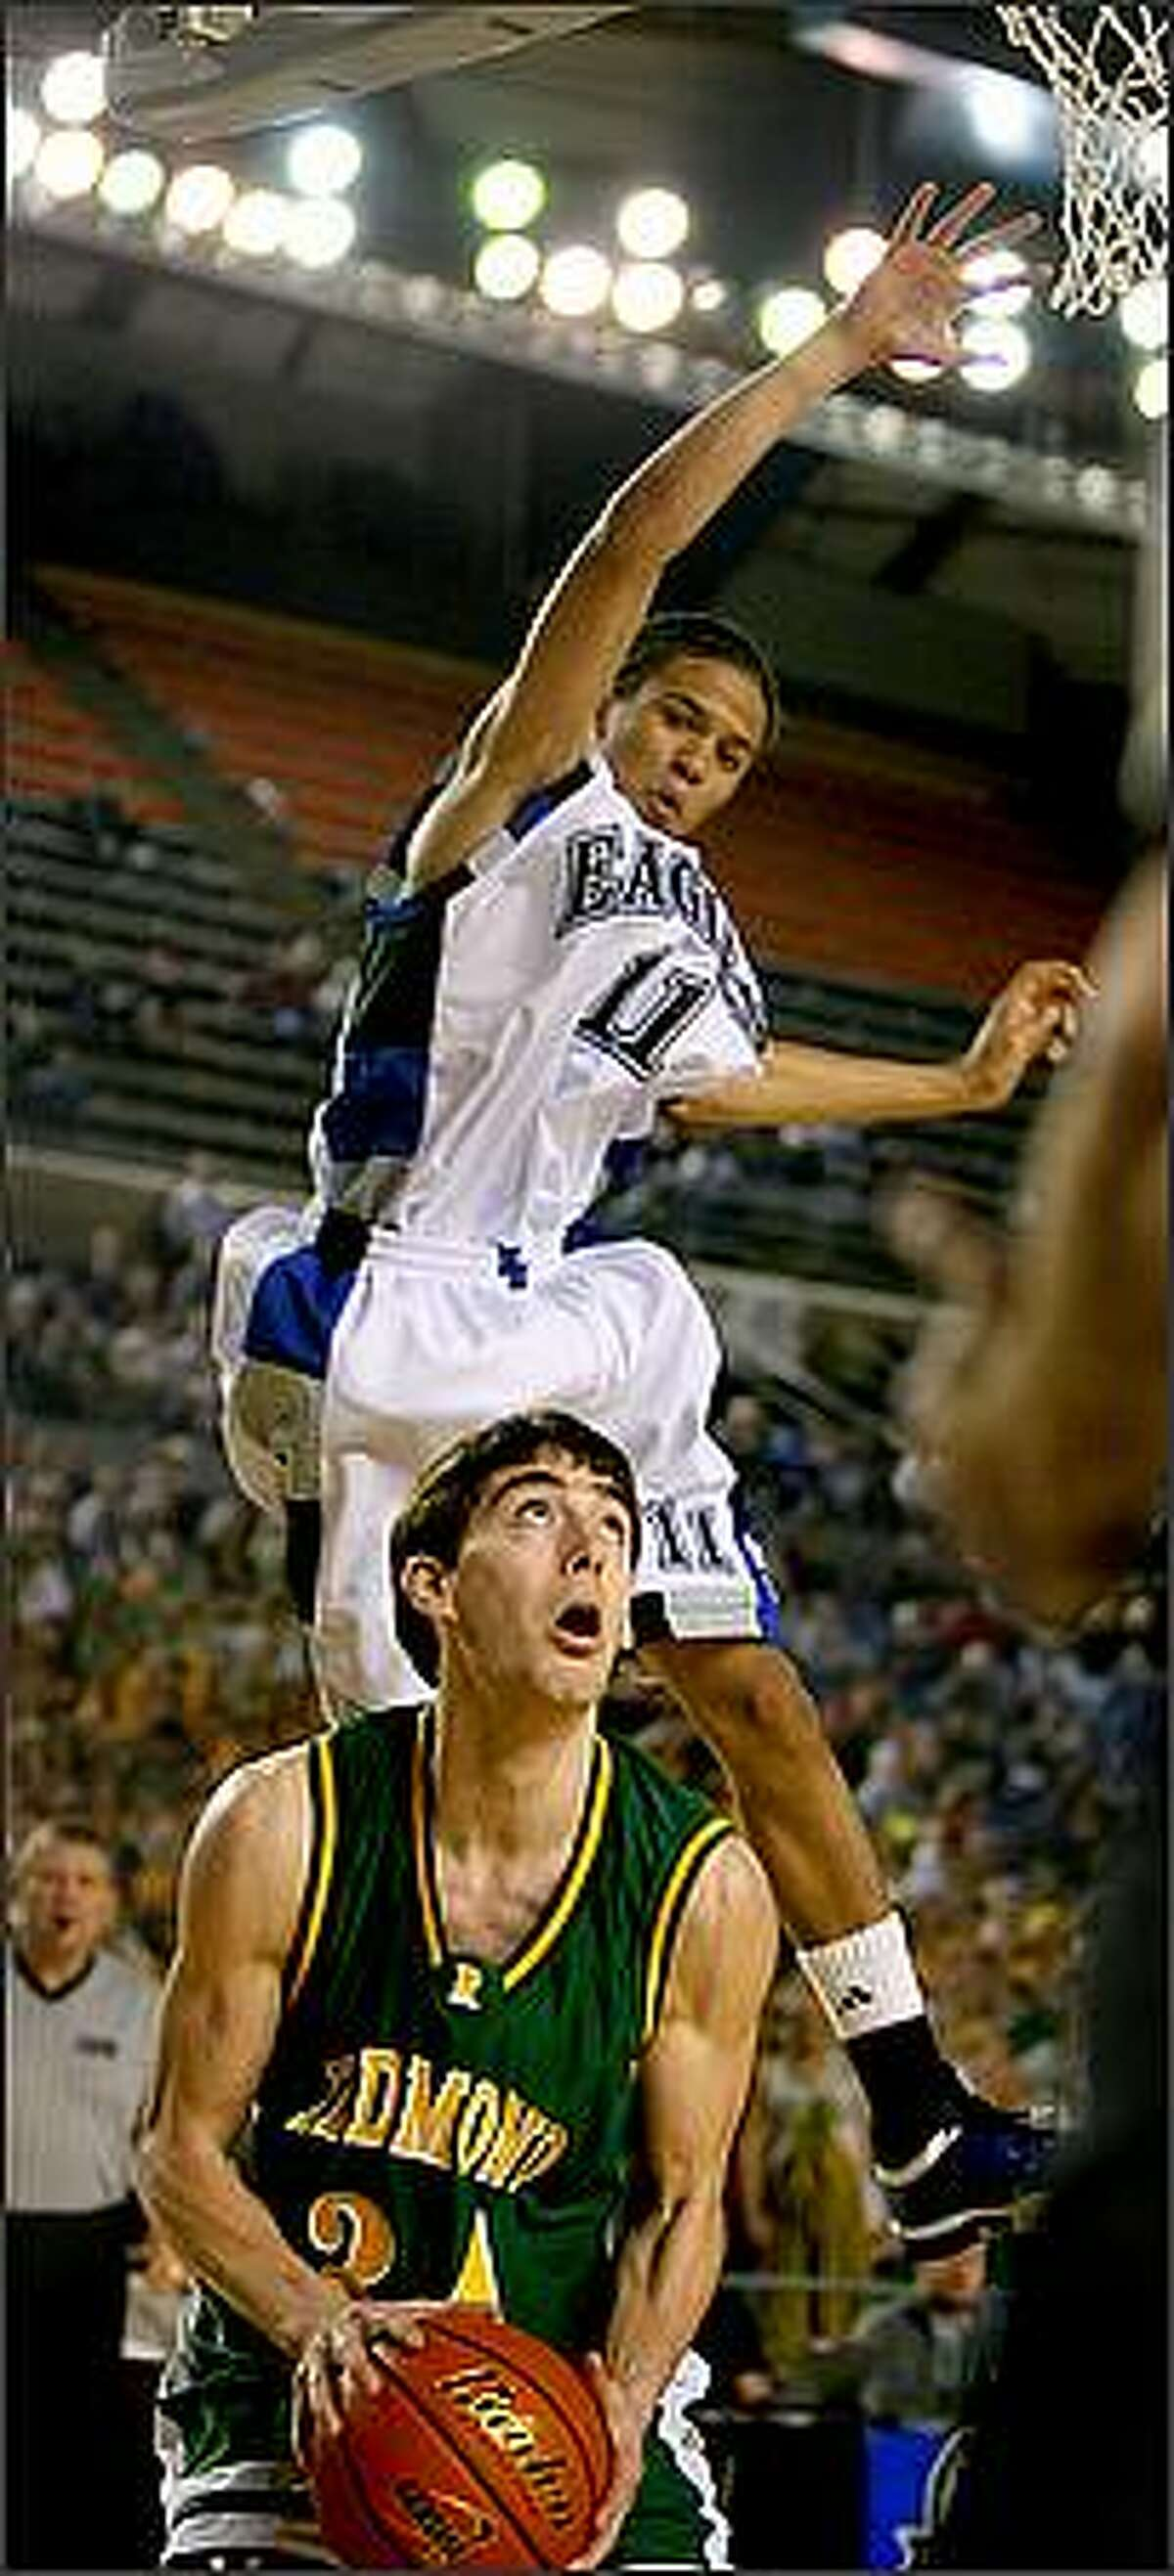 Federal Way's Michael Hale gets some elevation as he is faked by Redmond's Chad Hui-Peterson in the first quarter as Federal Way High School battles Redmond High School in the first round of the WIAA Boys' State Basketball Championships at the Tacoma Dome in Tacoma, Wash.